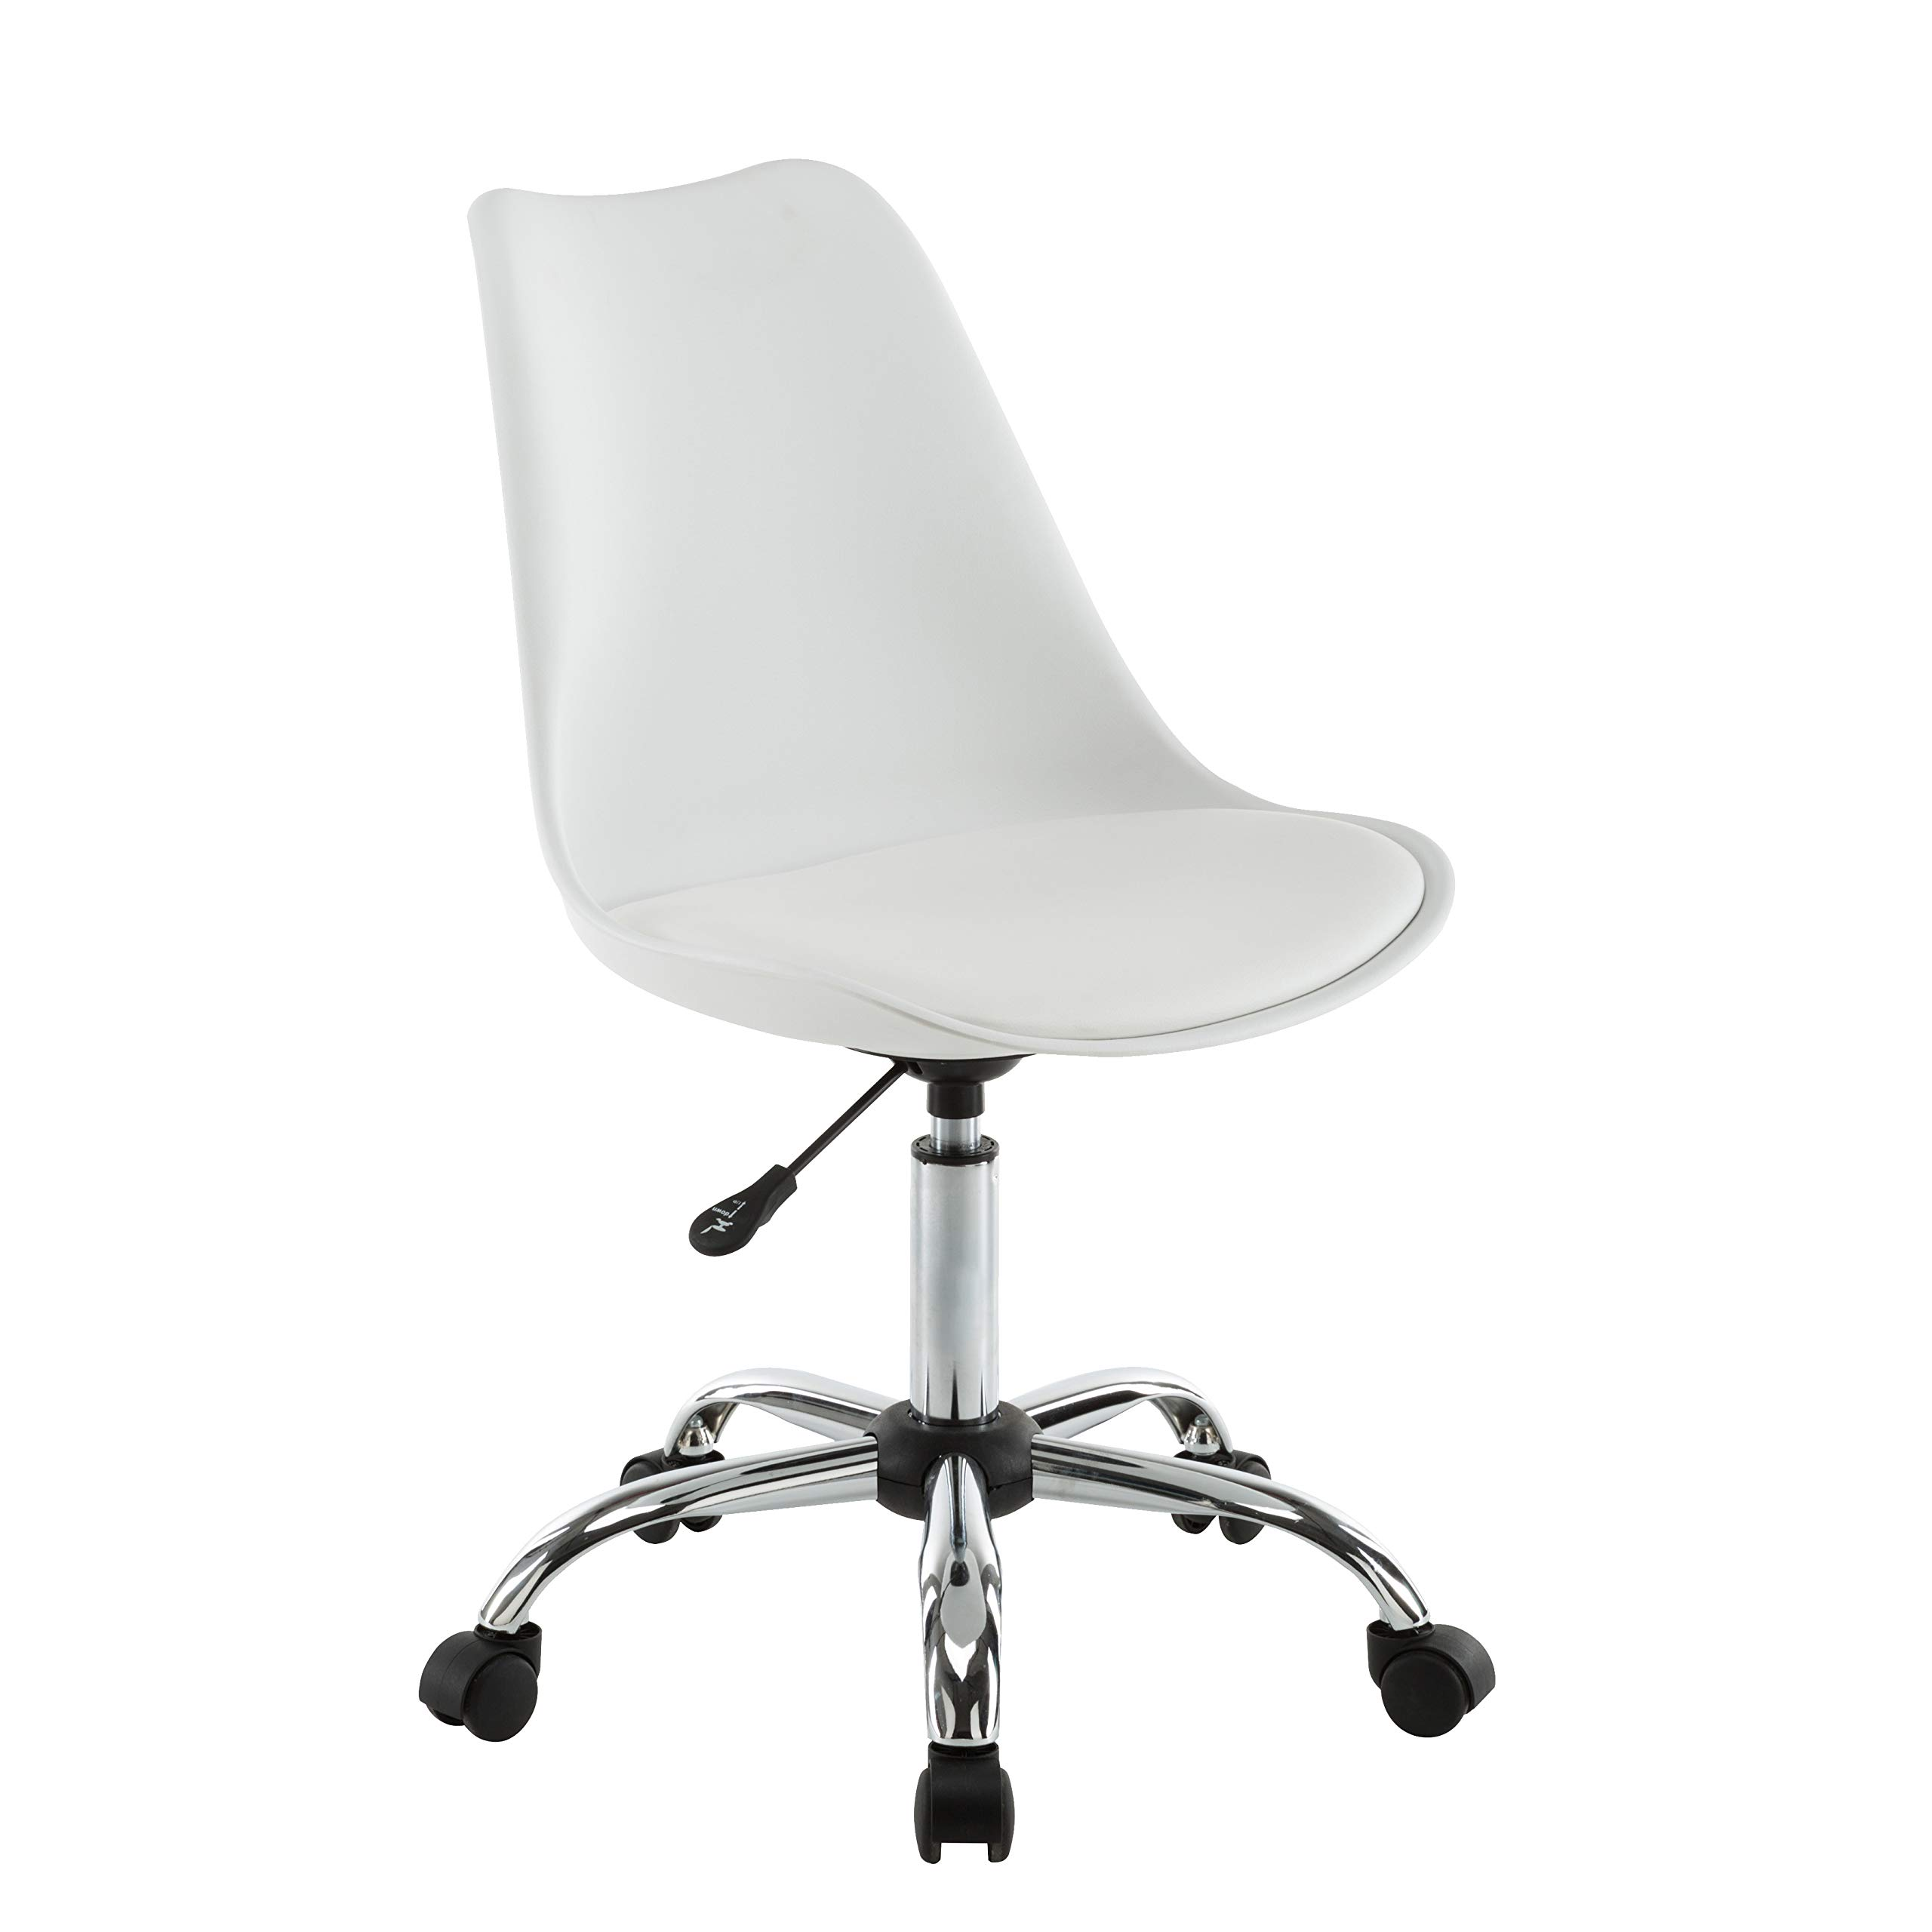 Porthos Home TFC037A WHT Teresa Adjustable Office Chair, One Size, White